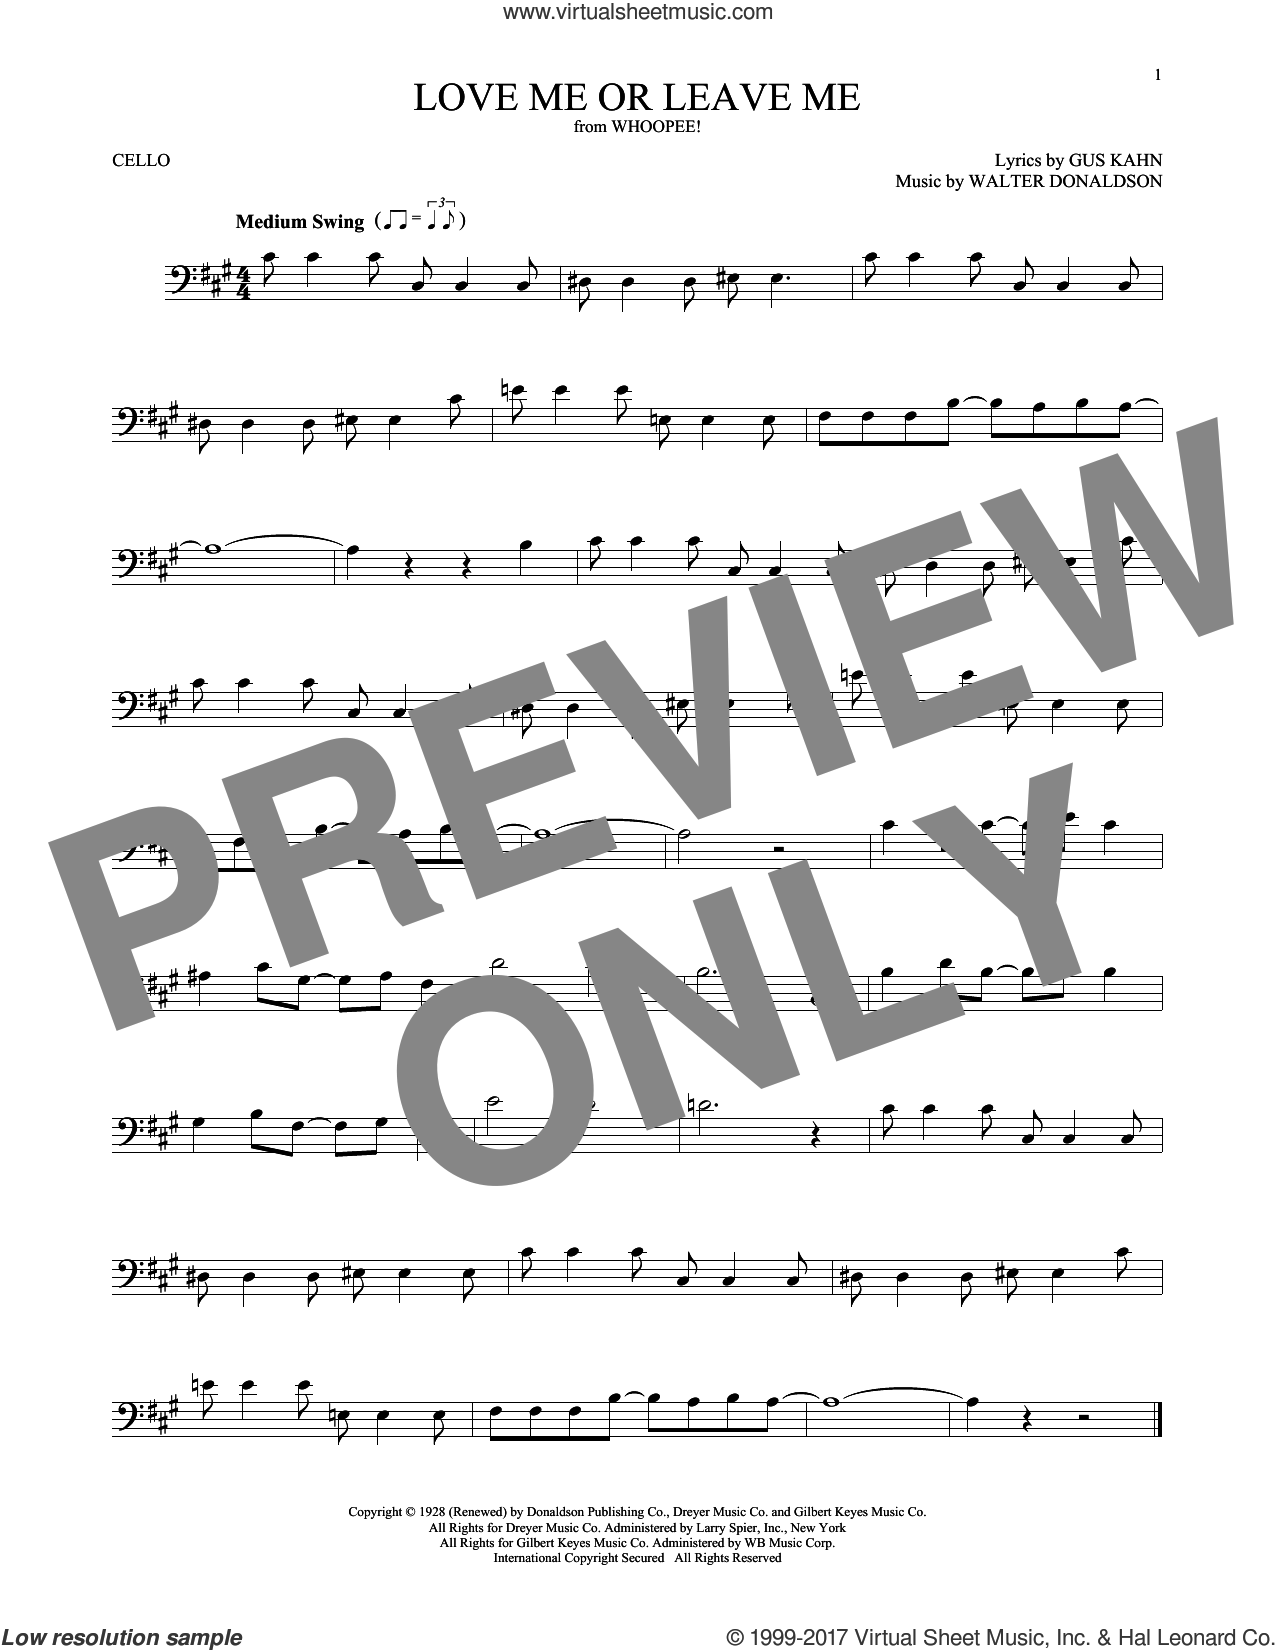 Love Me Or Leave Me sheet music for cello solo by Gus Kahn, Dave Pell and Walter Donaldson, intermediate skill level